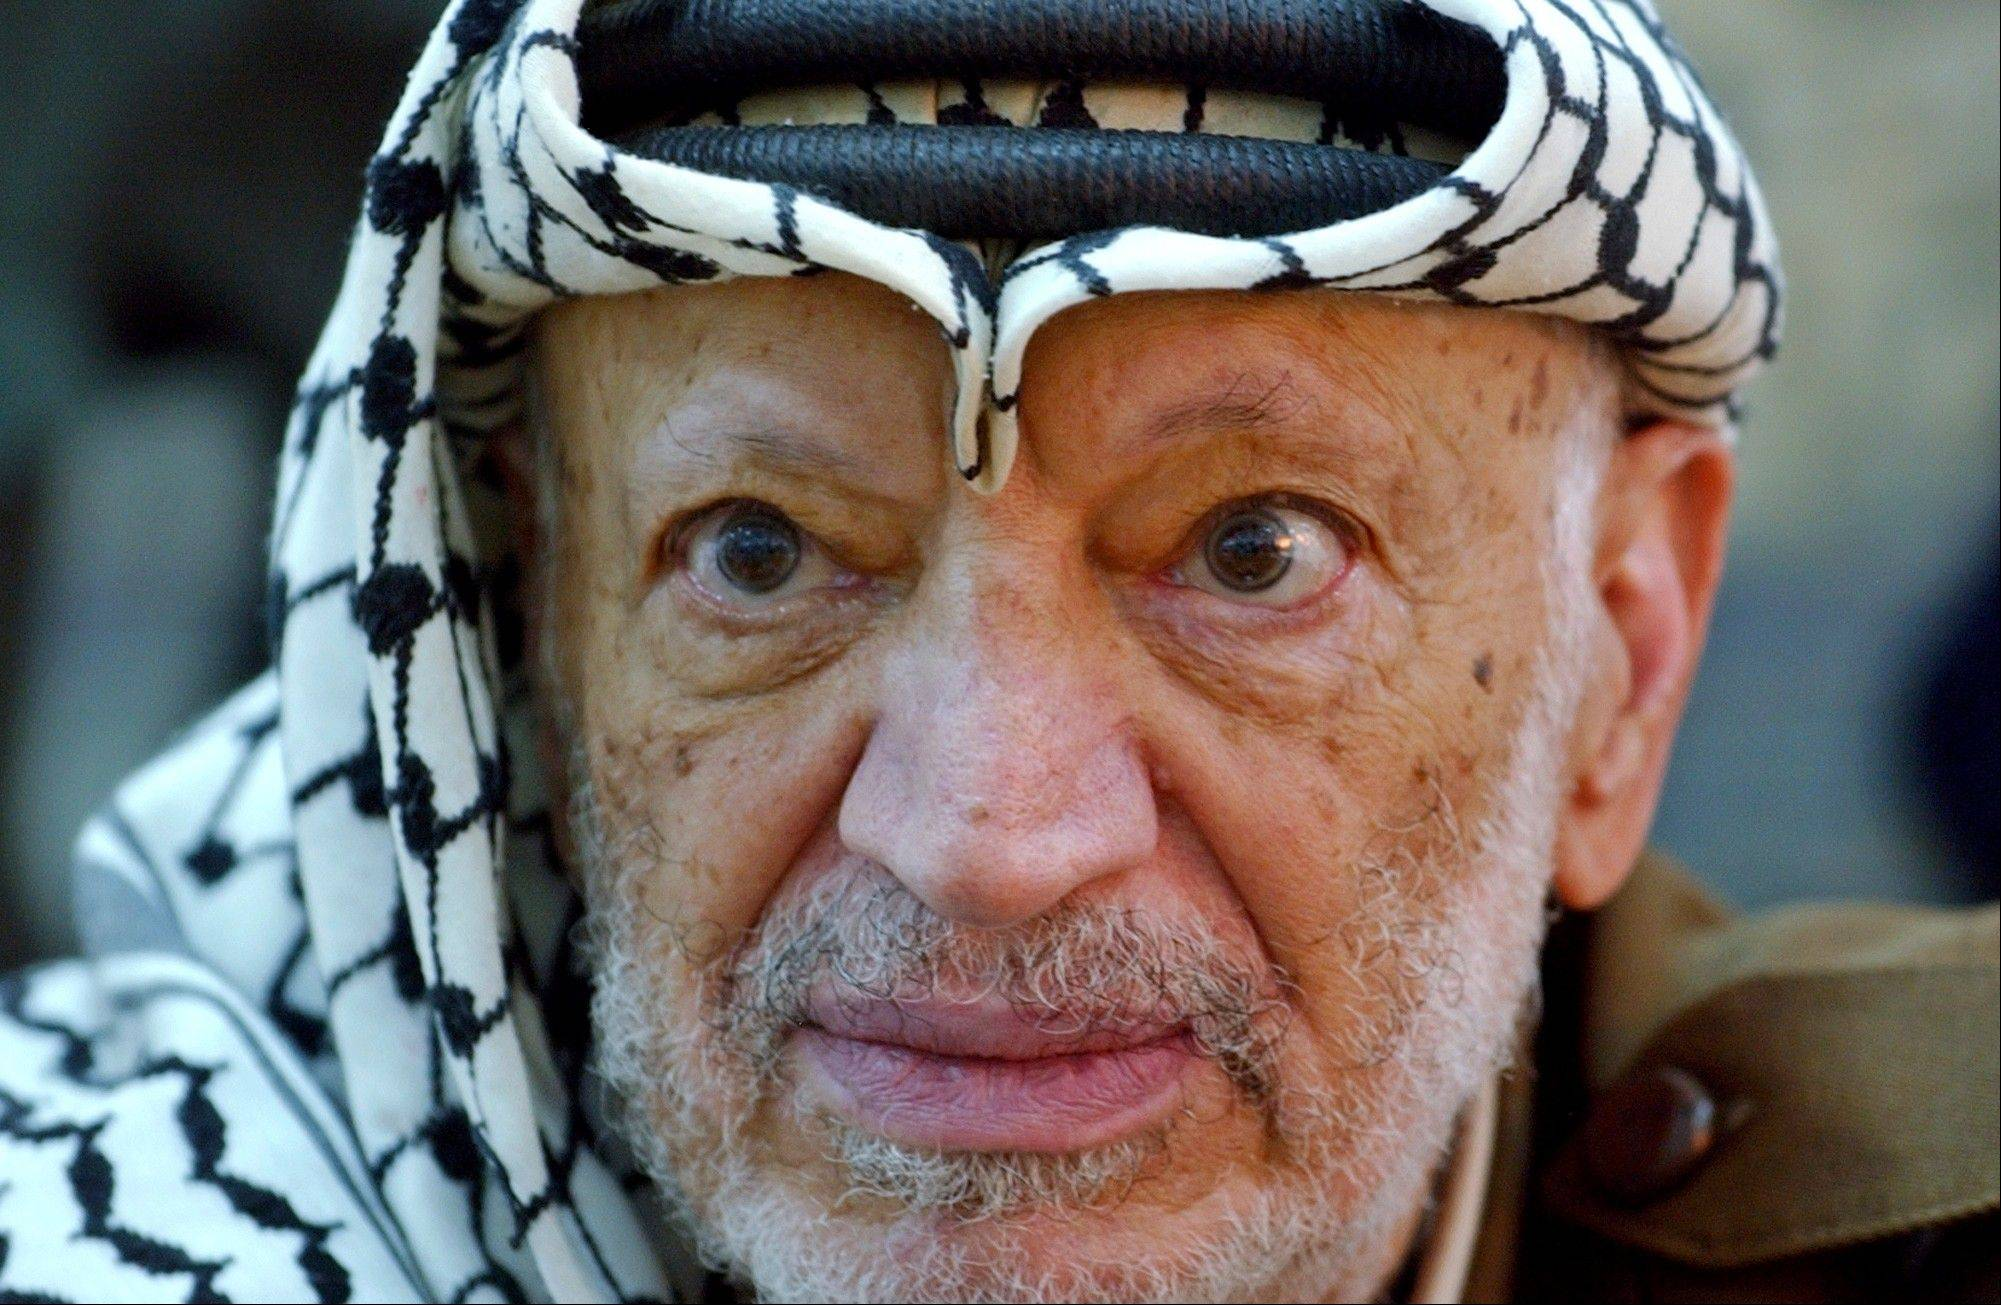 Yasser Arafat's political heirs on Tuesday opened his grave and foreign experts took samples of the iconic Palestinian leader's remains as part of a long-shot attempt — eight years after his mysterious death — to determine whether he was poisoned.